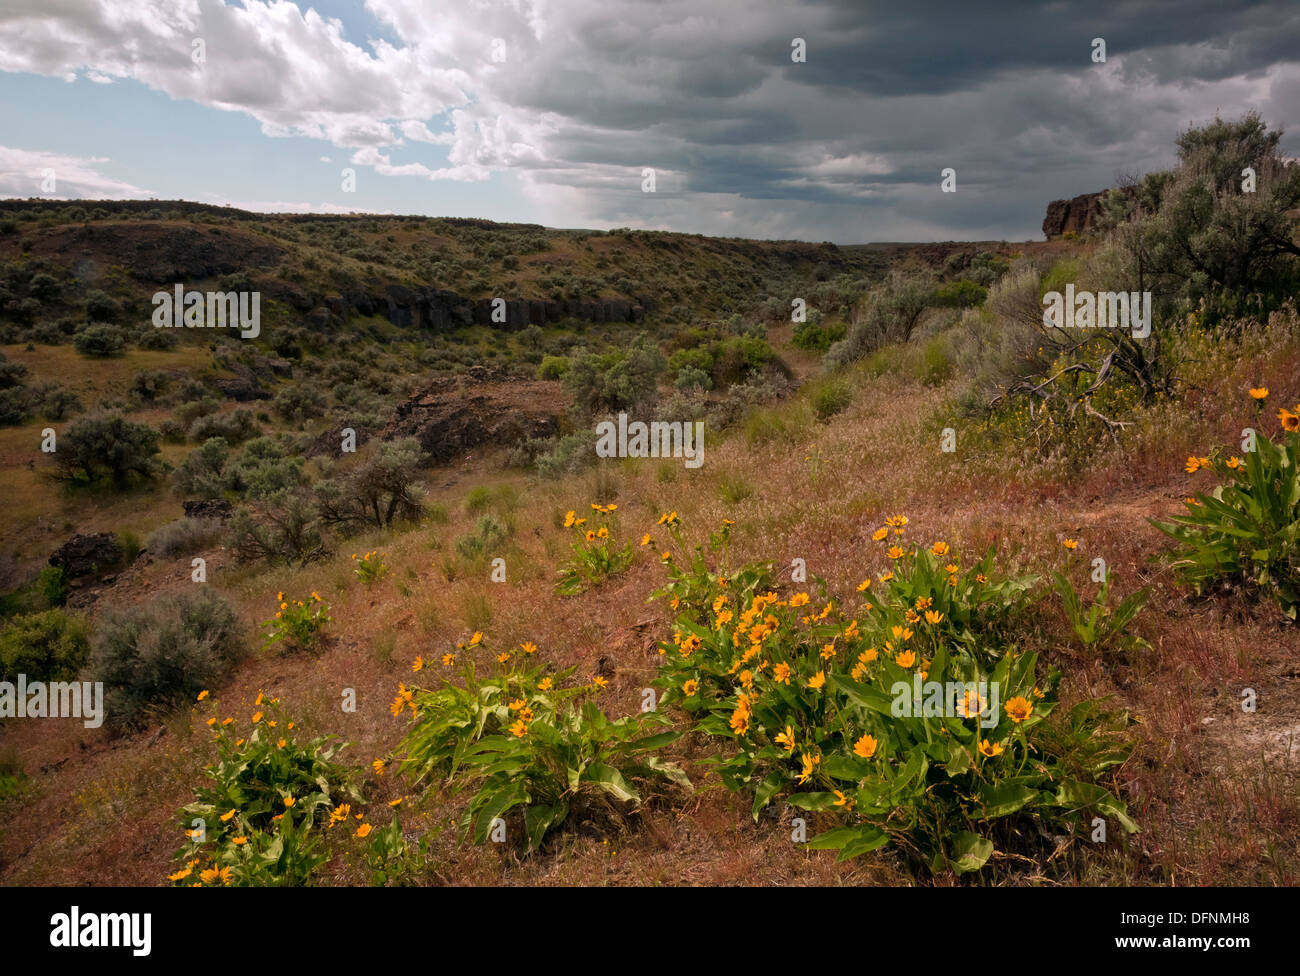 WASHINGTON - Storm coming over the prairie along the Frog Lake Trail in the Columbia National Wildlife Area. - Stock Image